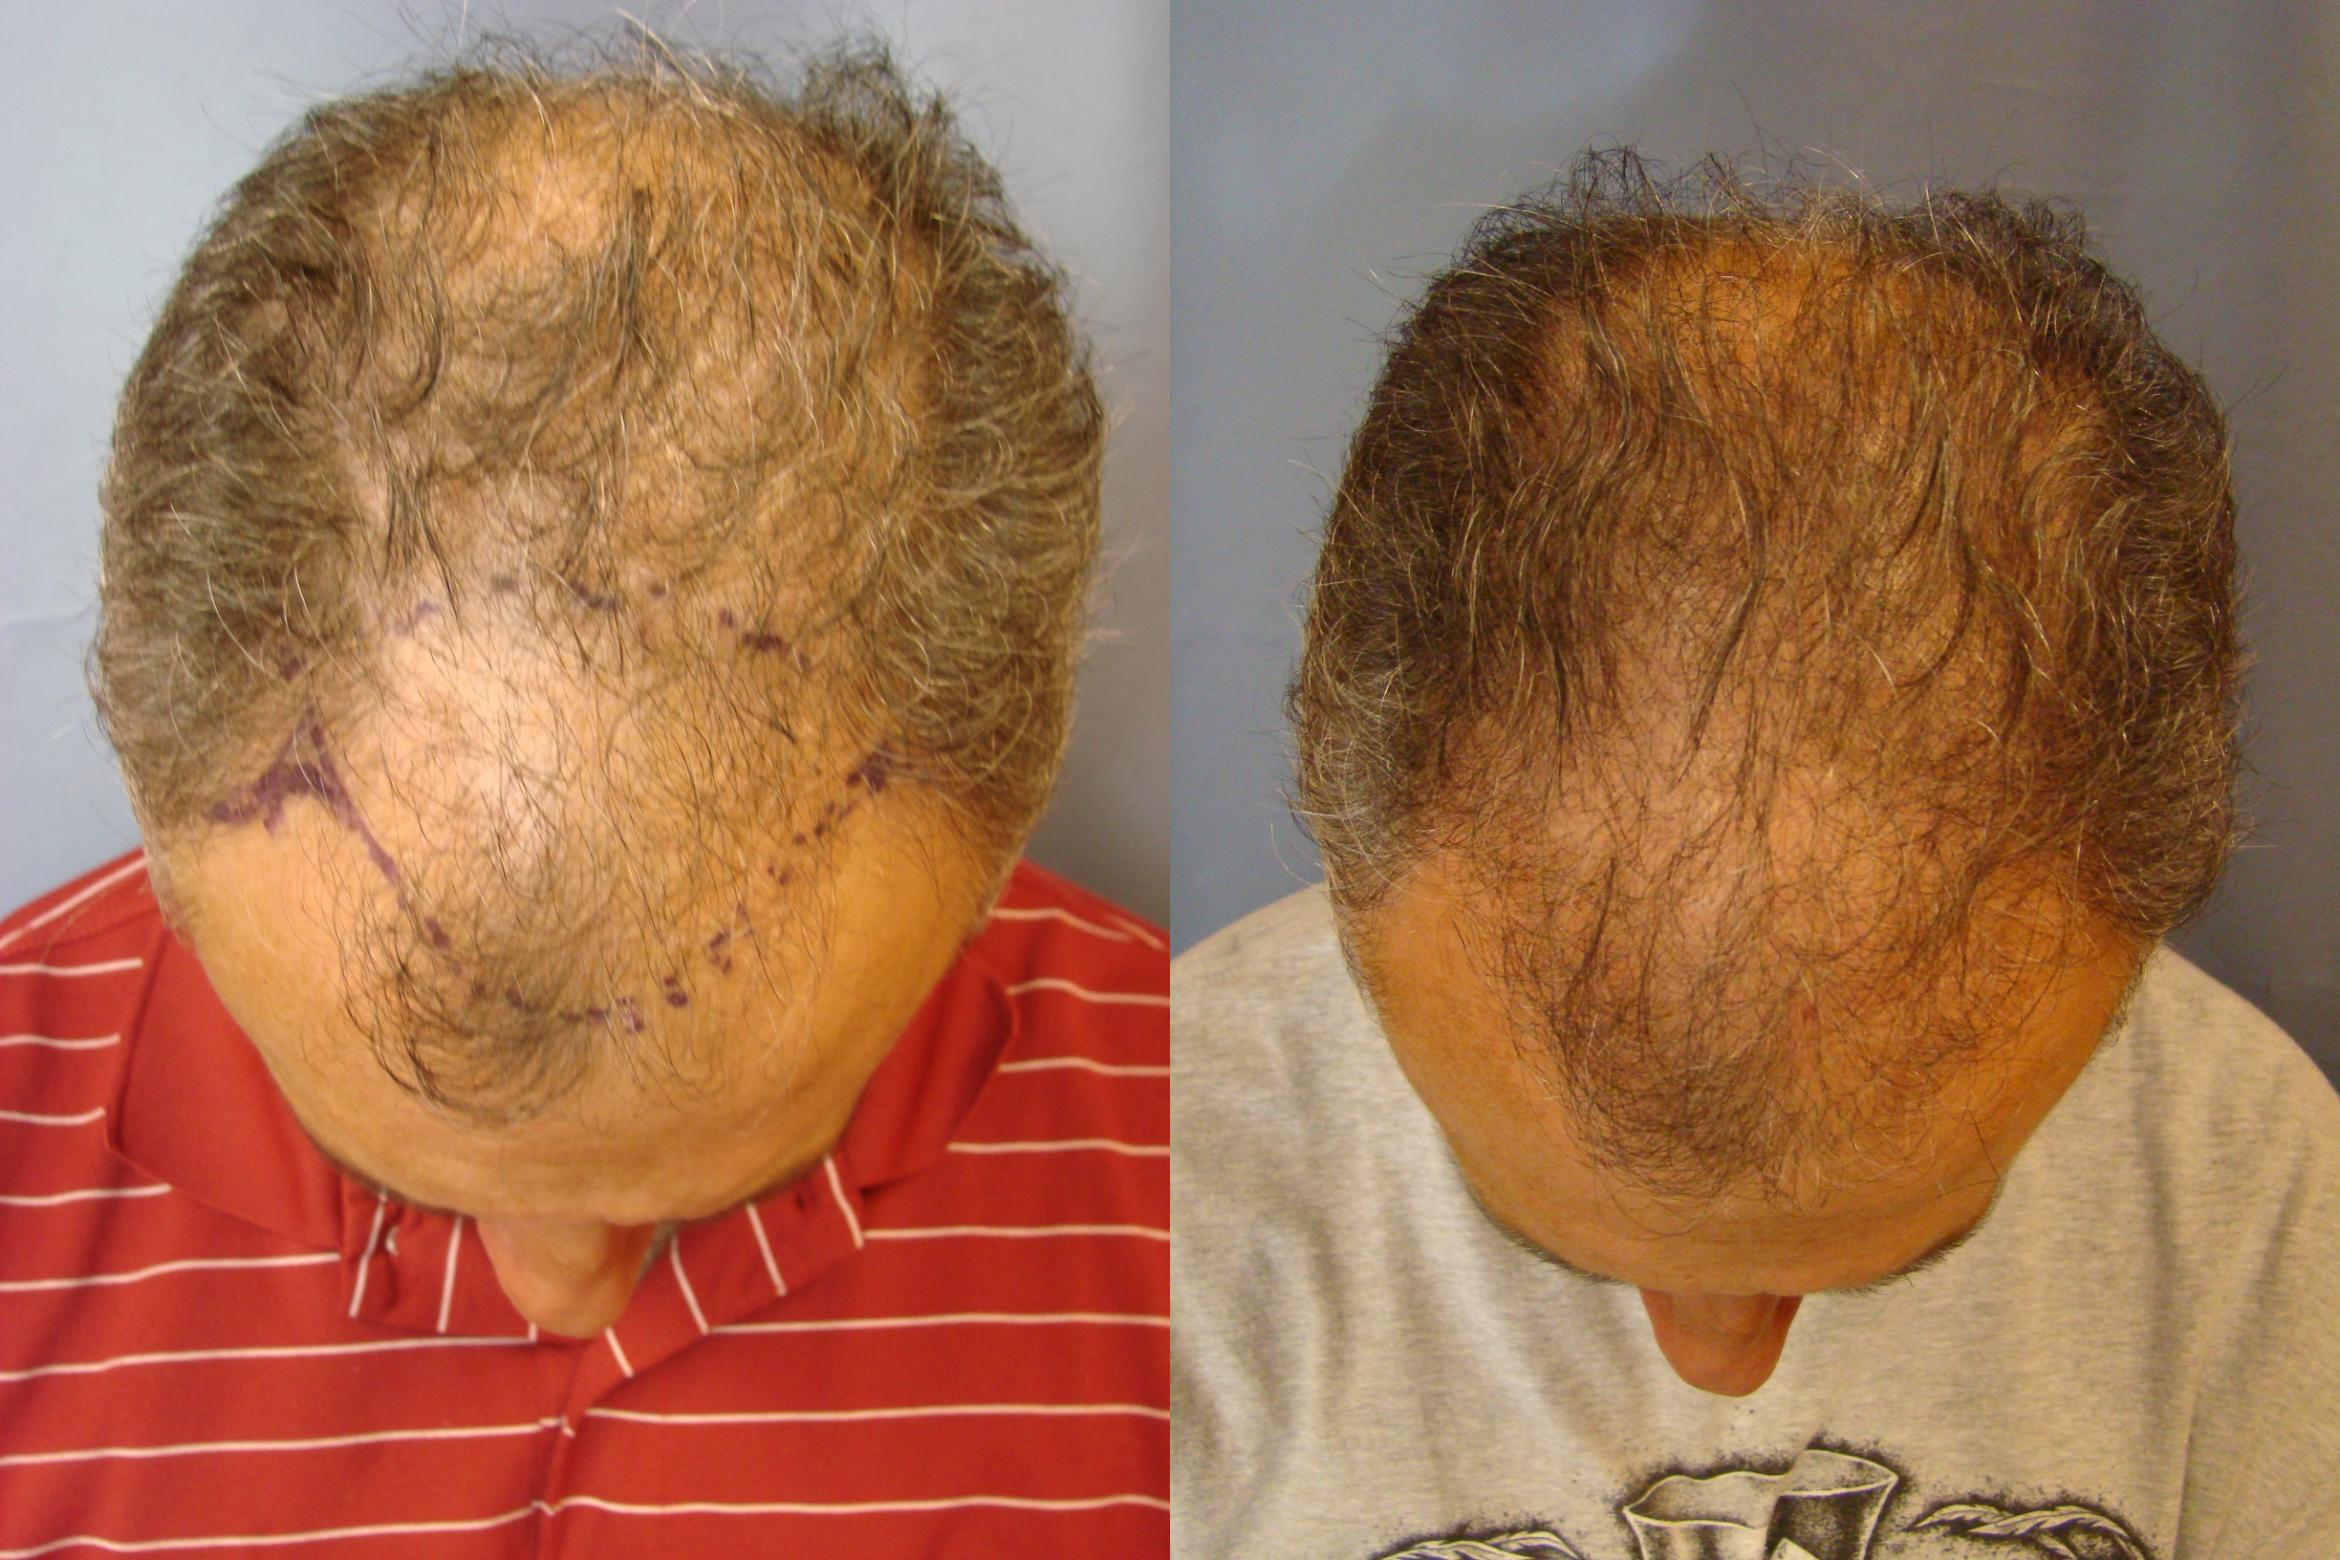 Neograft Hair Replacement Case 84 Before & After View #1 | Birmingham, AL | Dr. Michael S. Beckenstein